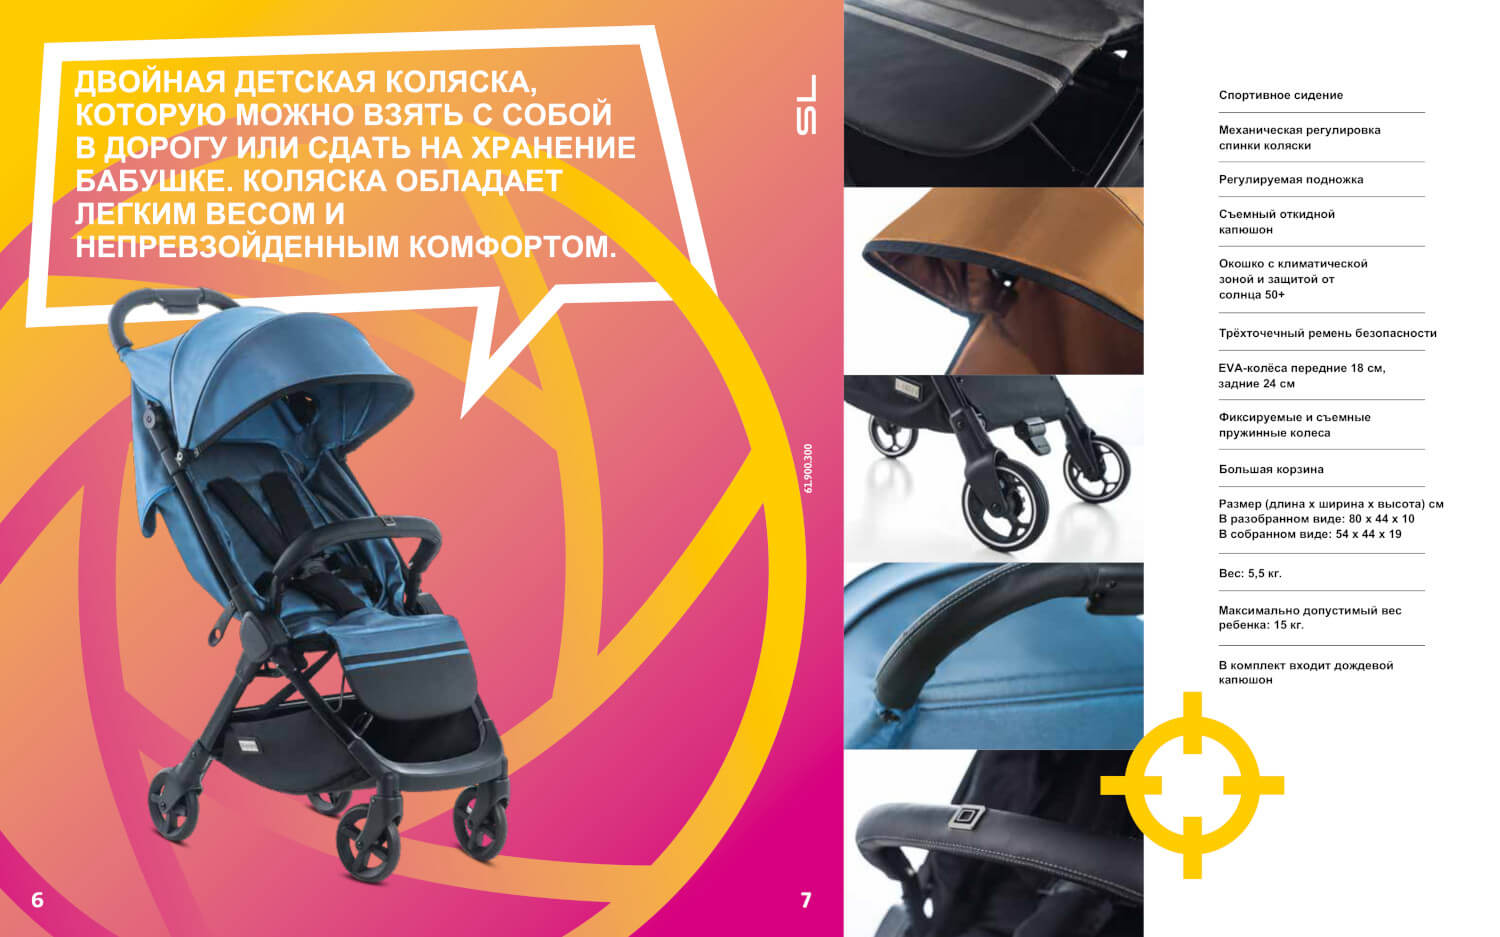 German product catalogue after being translated into russian (similar layout)